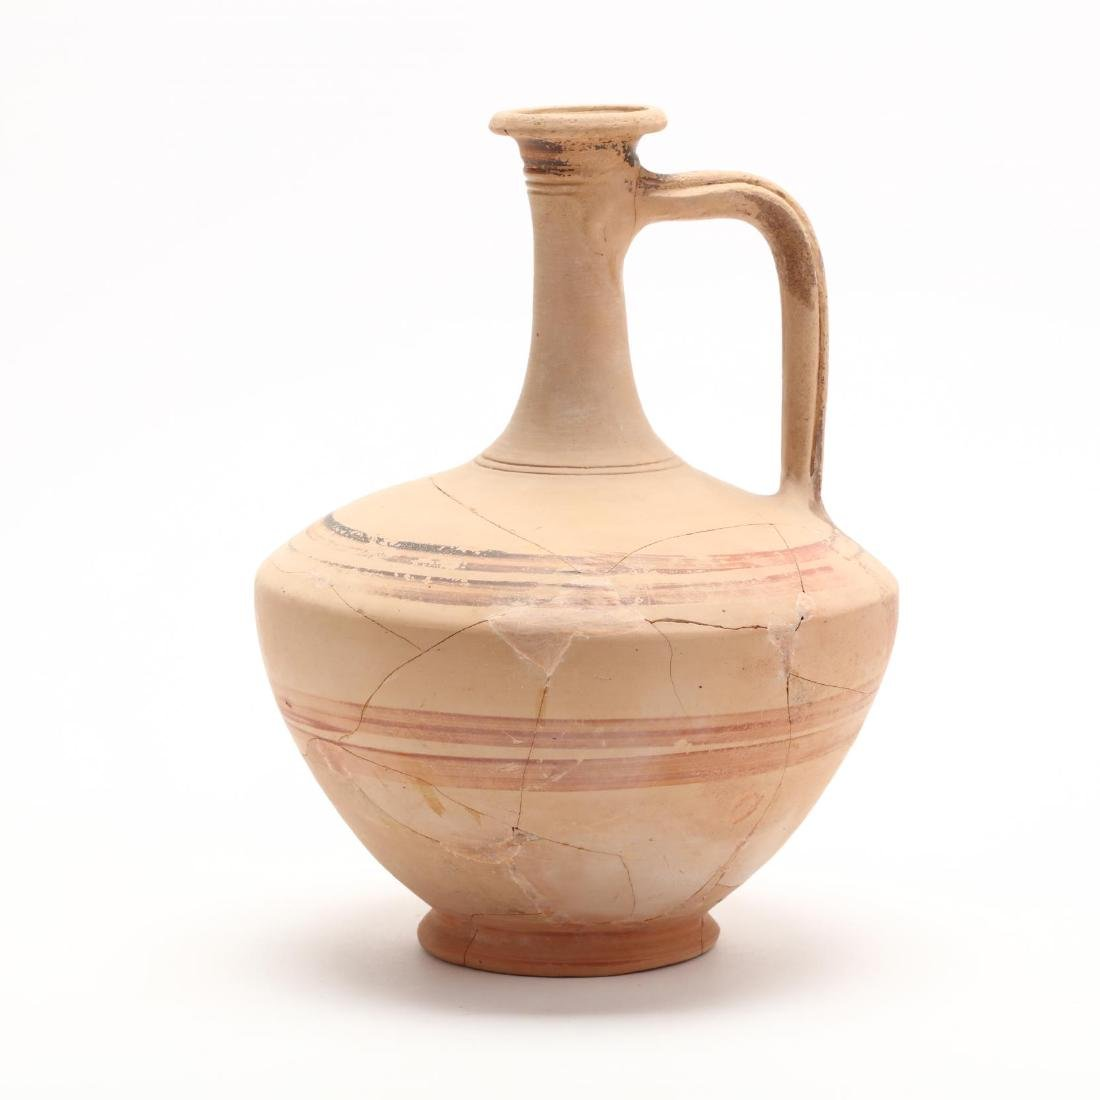 Hellenistic Cypriot White Ware Jug, Ex. Morris - 3